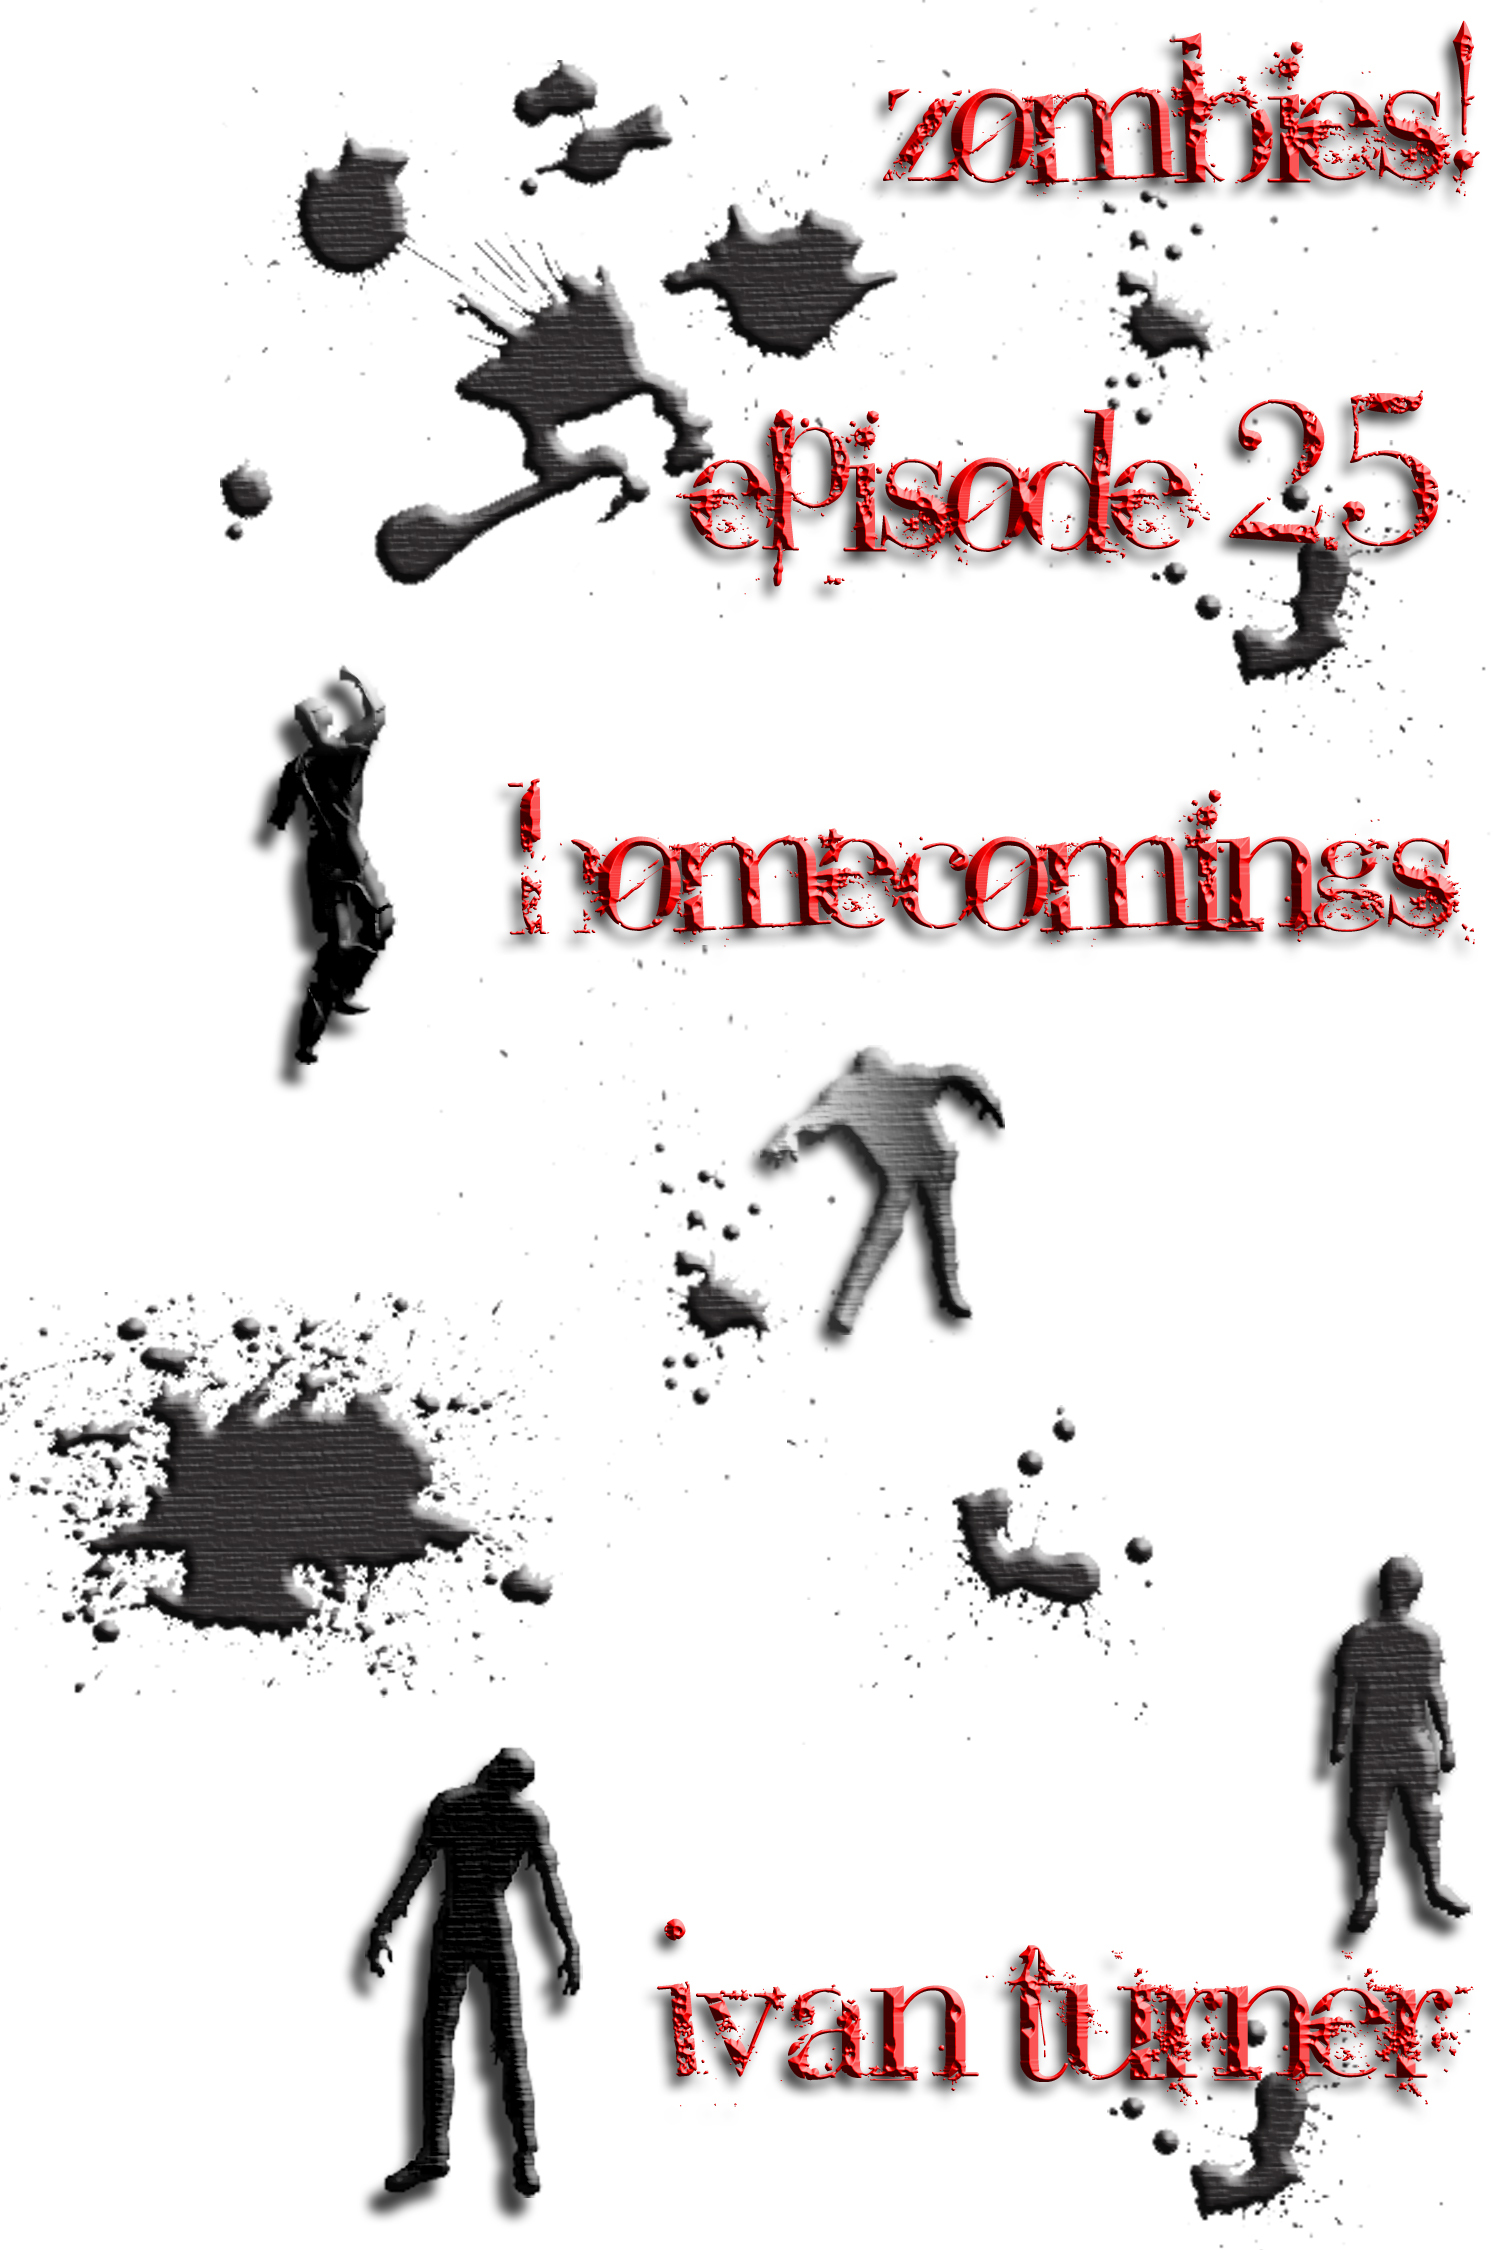 Zombies! Episode 2.5: Homecomings By: Ivan Turner